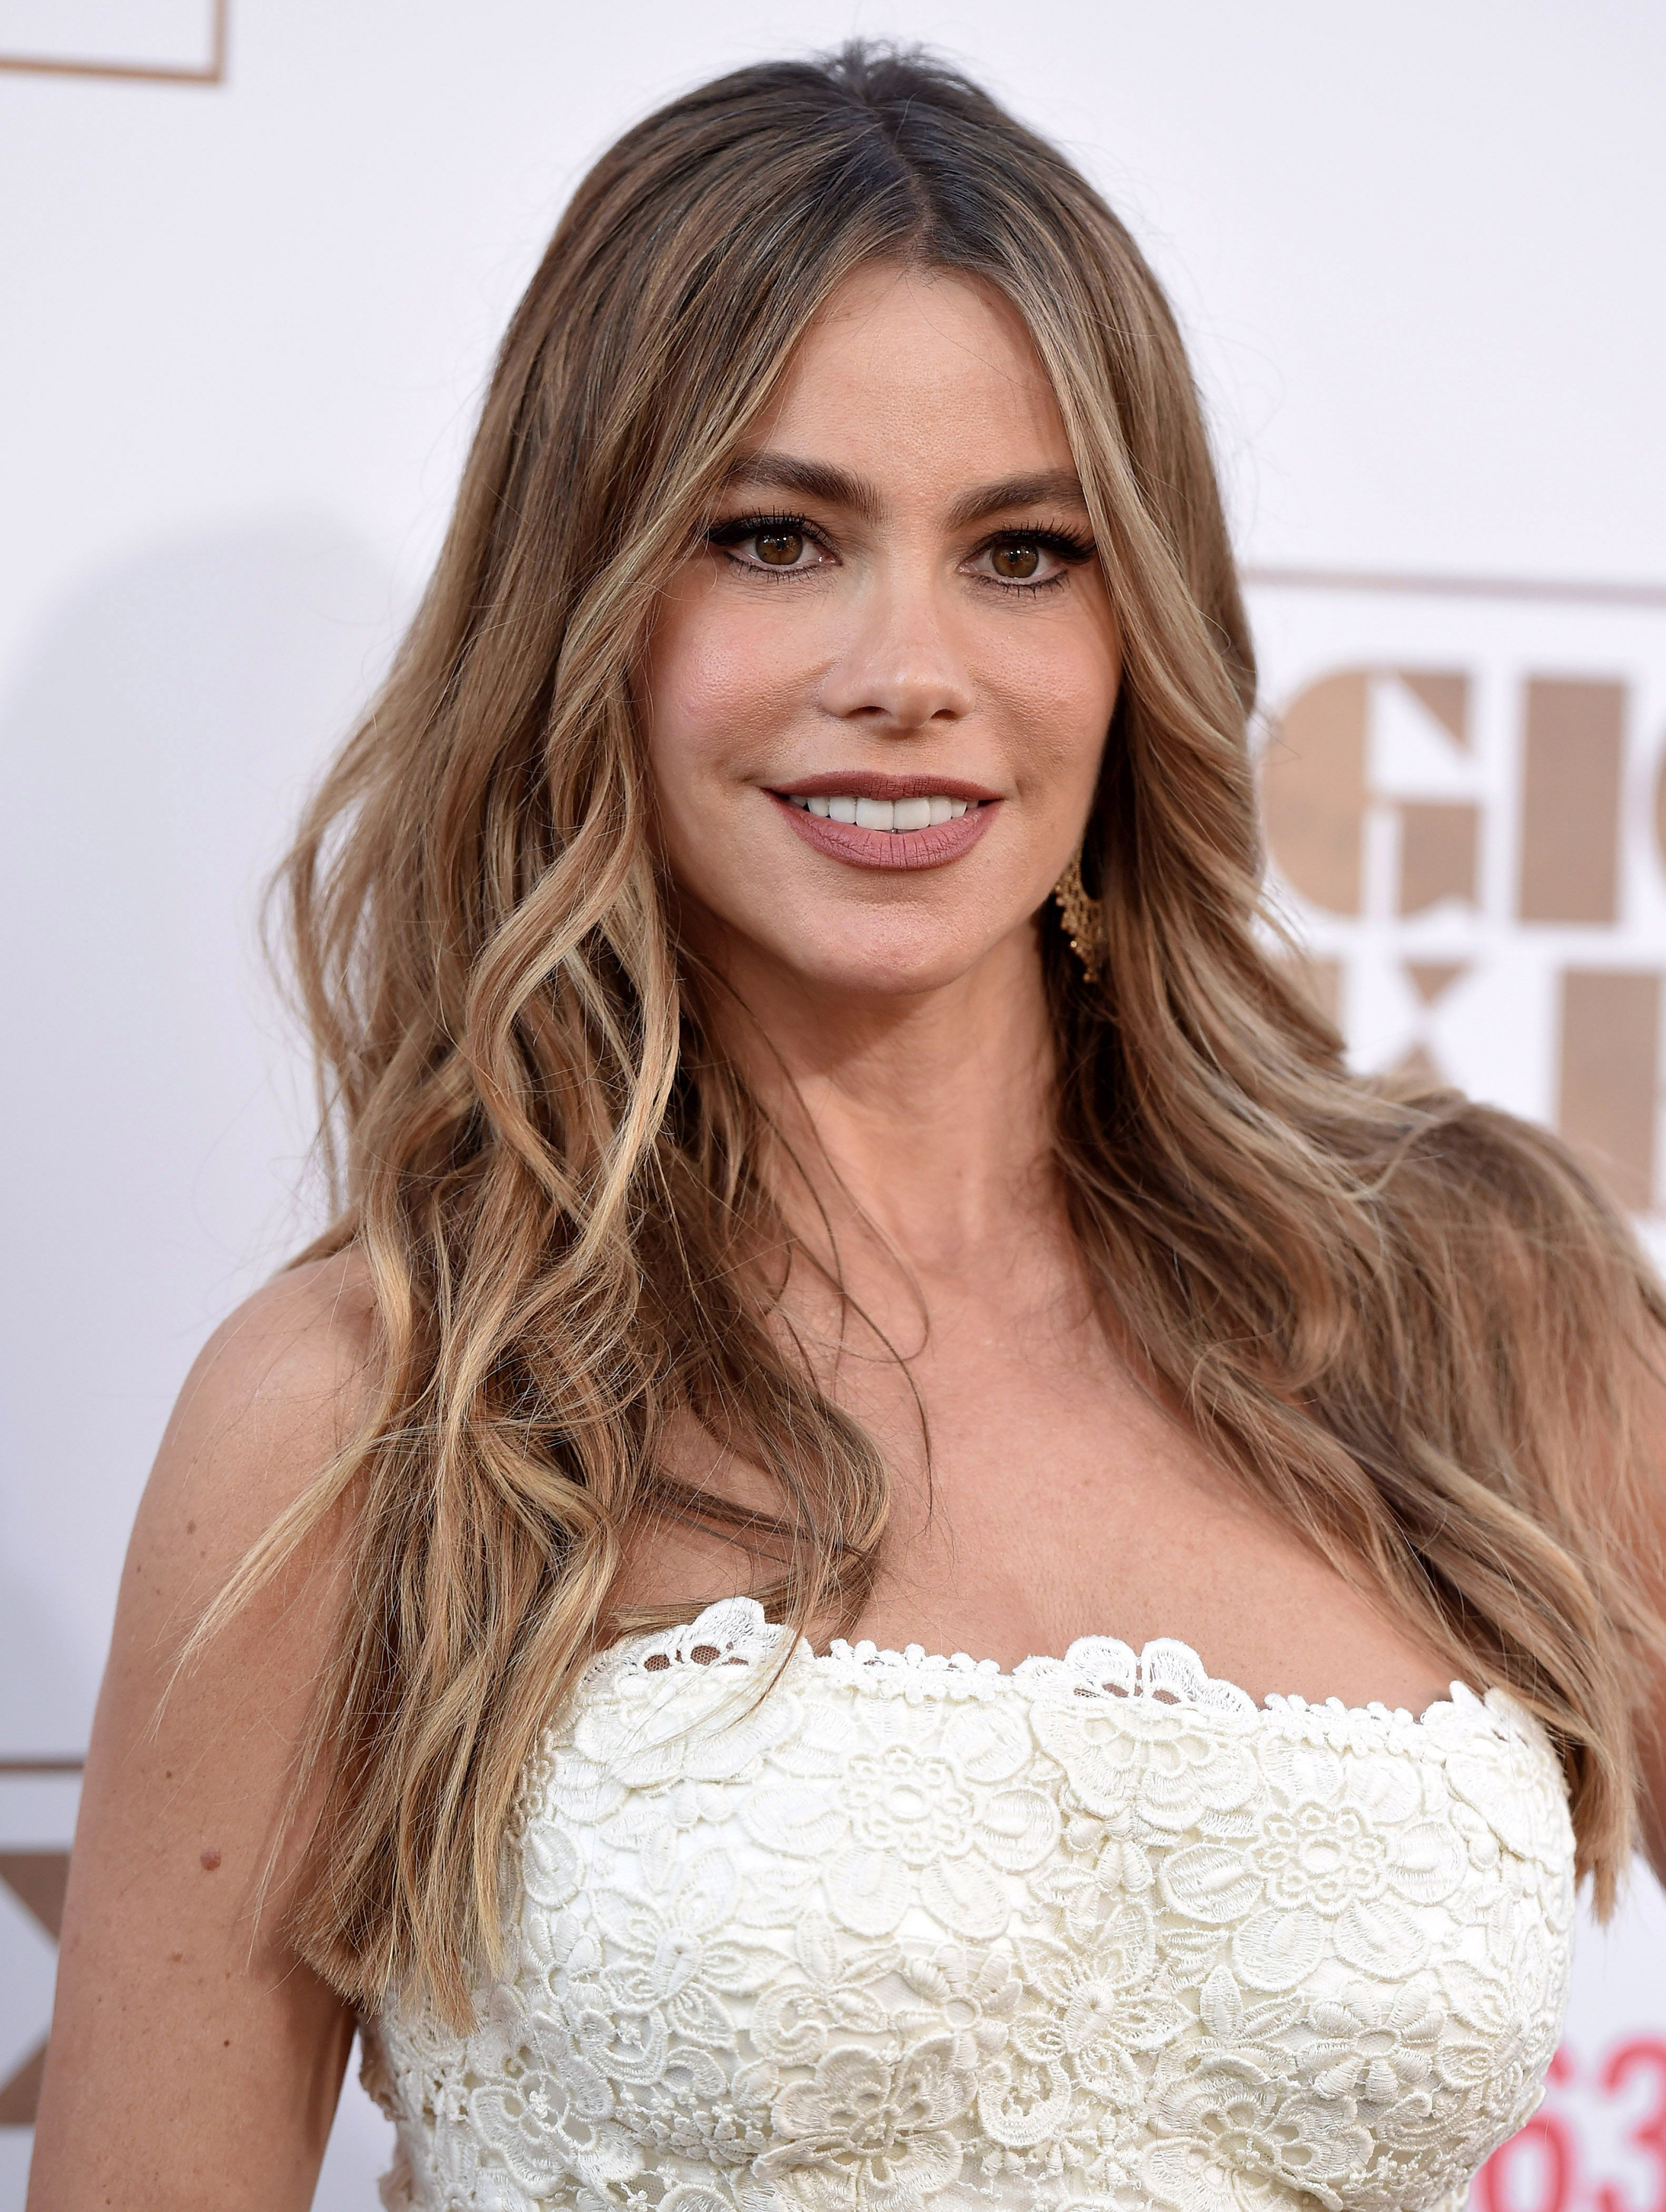 HOLLYWOOD, CA - JUNE 25:  Actress Sofia Vergara arrives at the Los Angeles World Premiere of Warner Bros. Pictures' 'Magic Mike XXL' at TCL Chinese Theatre IMAX on June 25, 2015 in Hollywood, California.  (Photo by Axelle/Bauer-Griffin/FilmMagic)